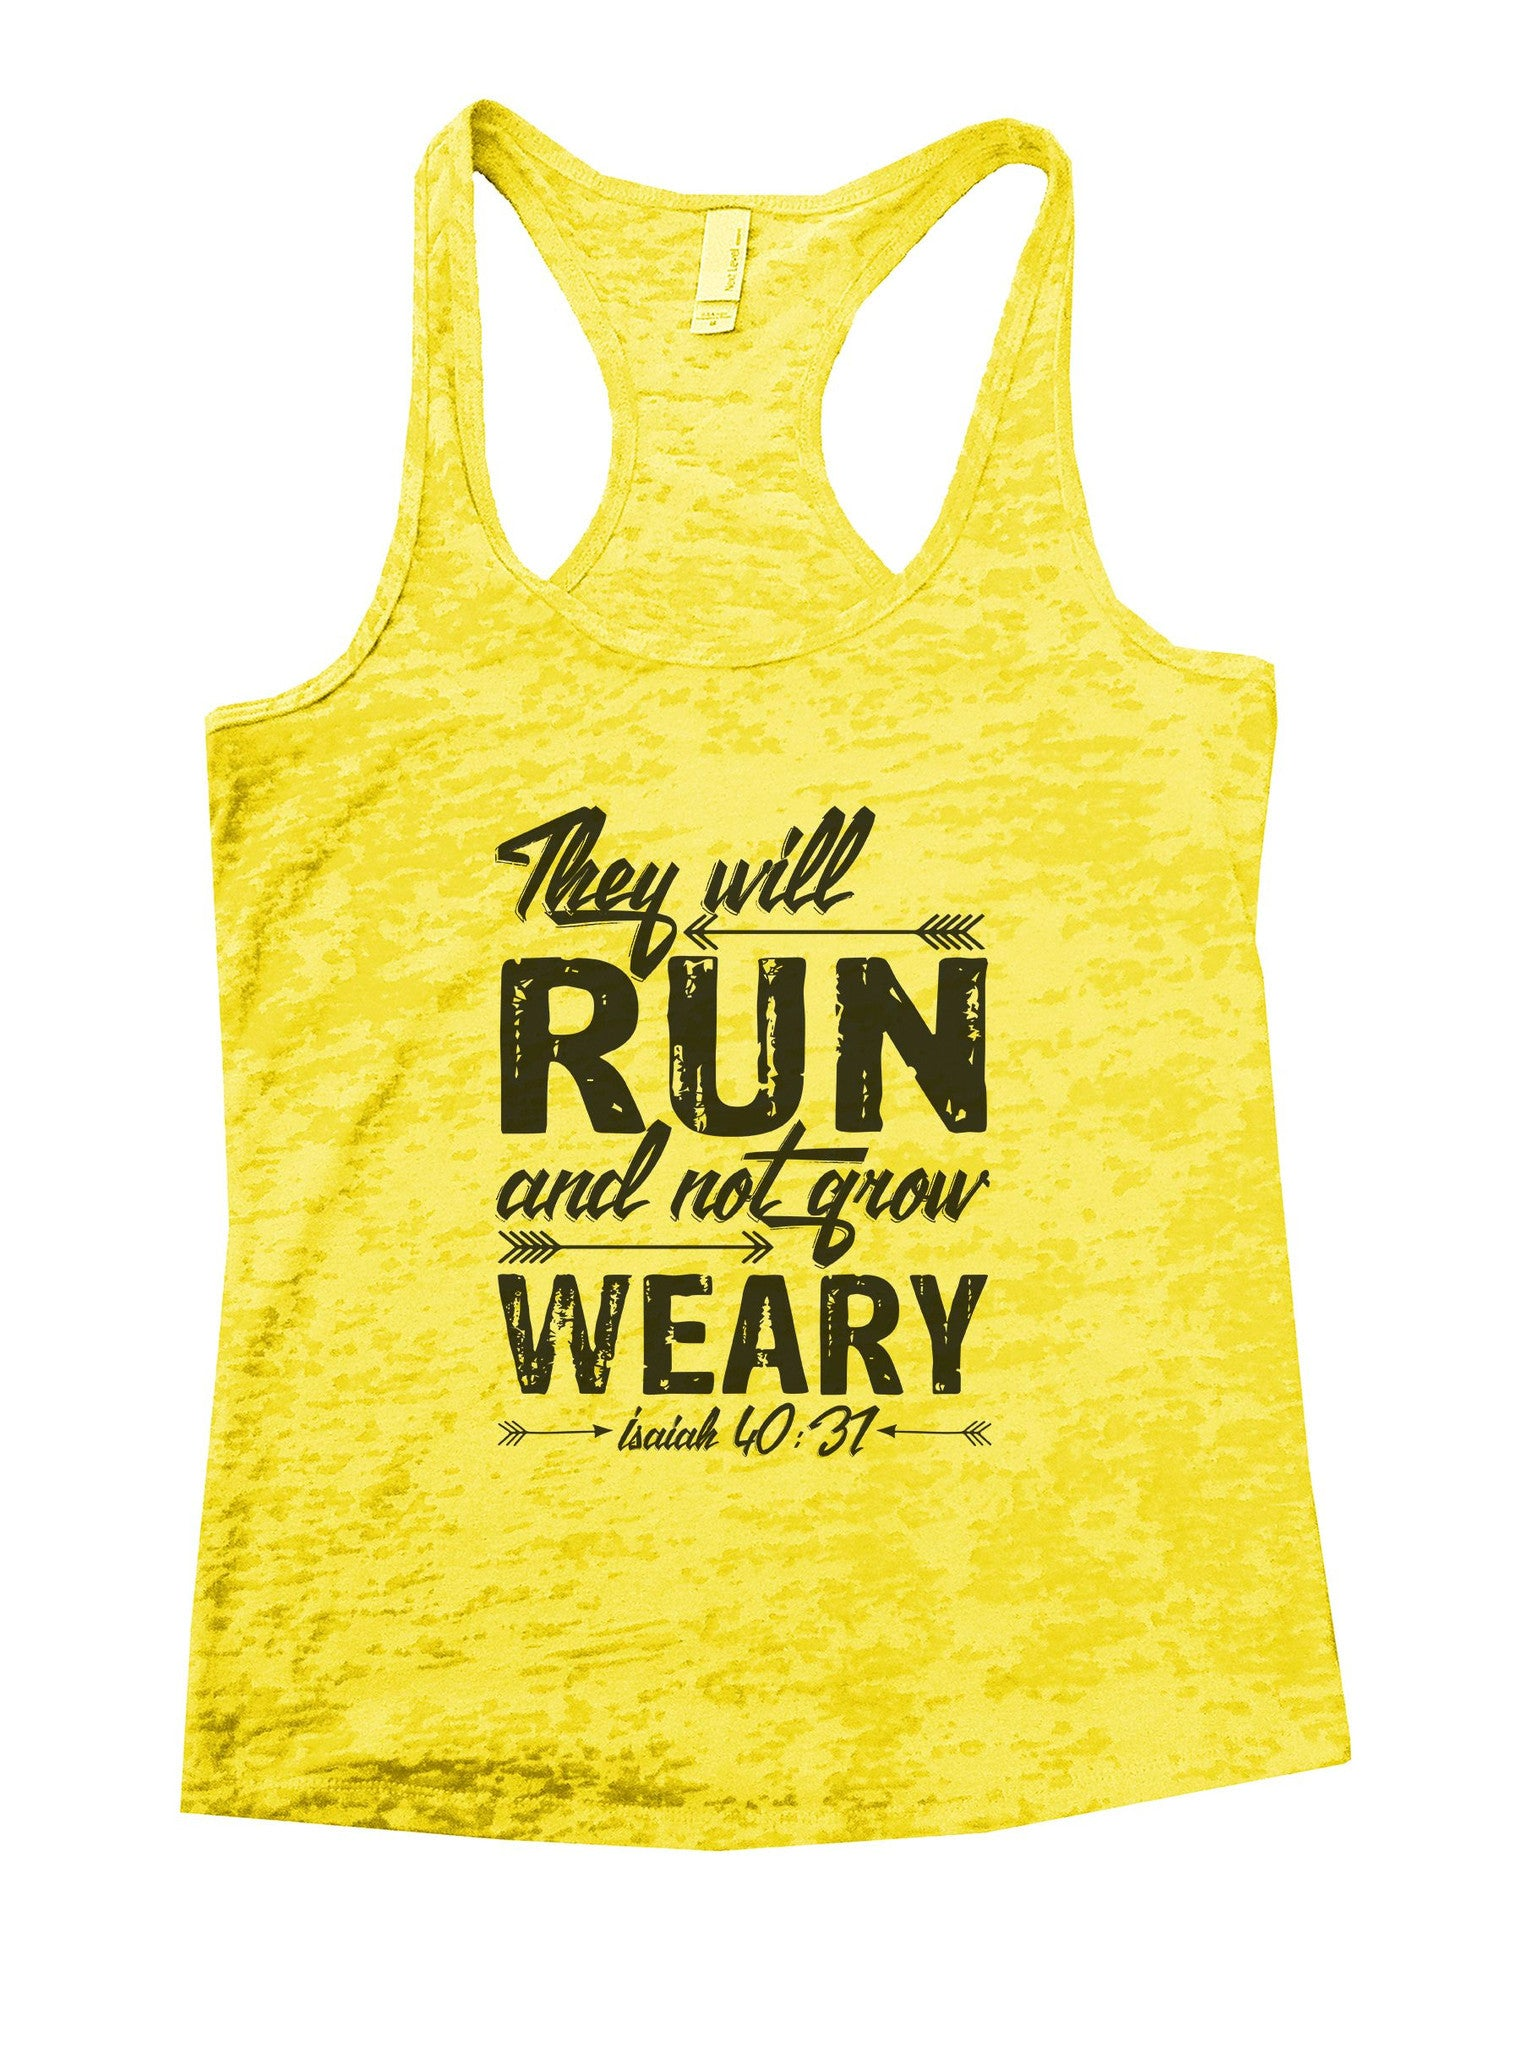 They Will Run And Not Grow Weary Isaiah 40:31 Burnout Tank Top By BurnoutTankTops.com - 1075 - Funny Shirts Tank Tops Burnouts and Triblends  - 7